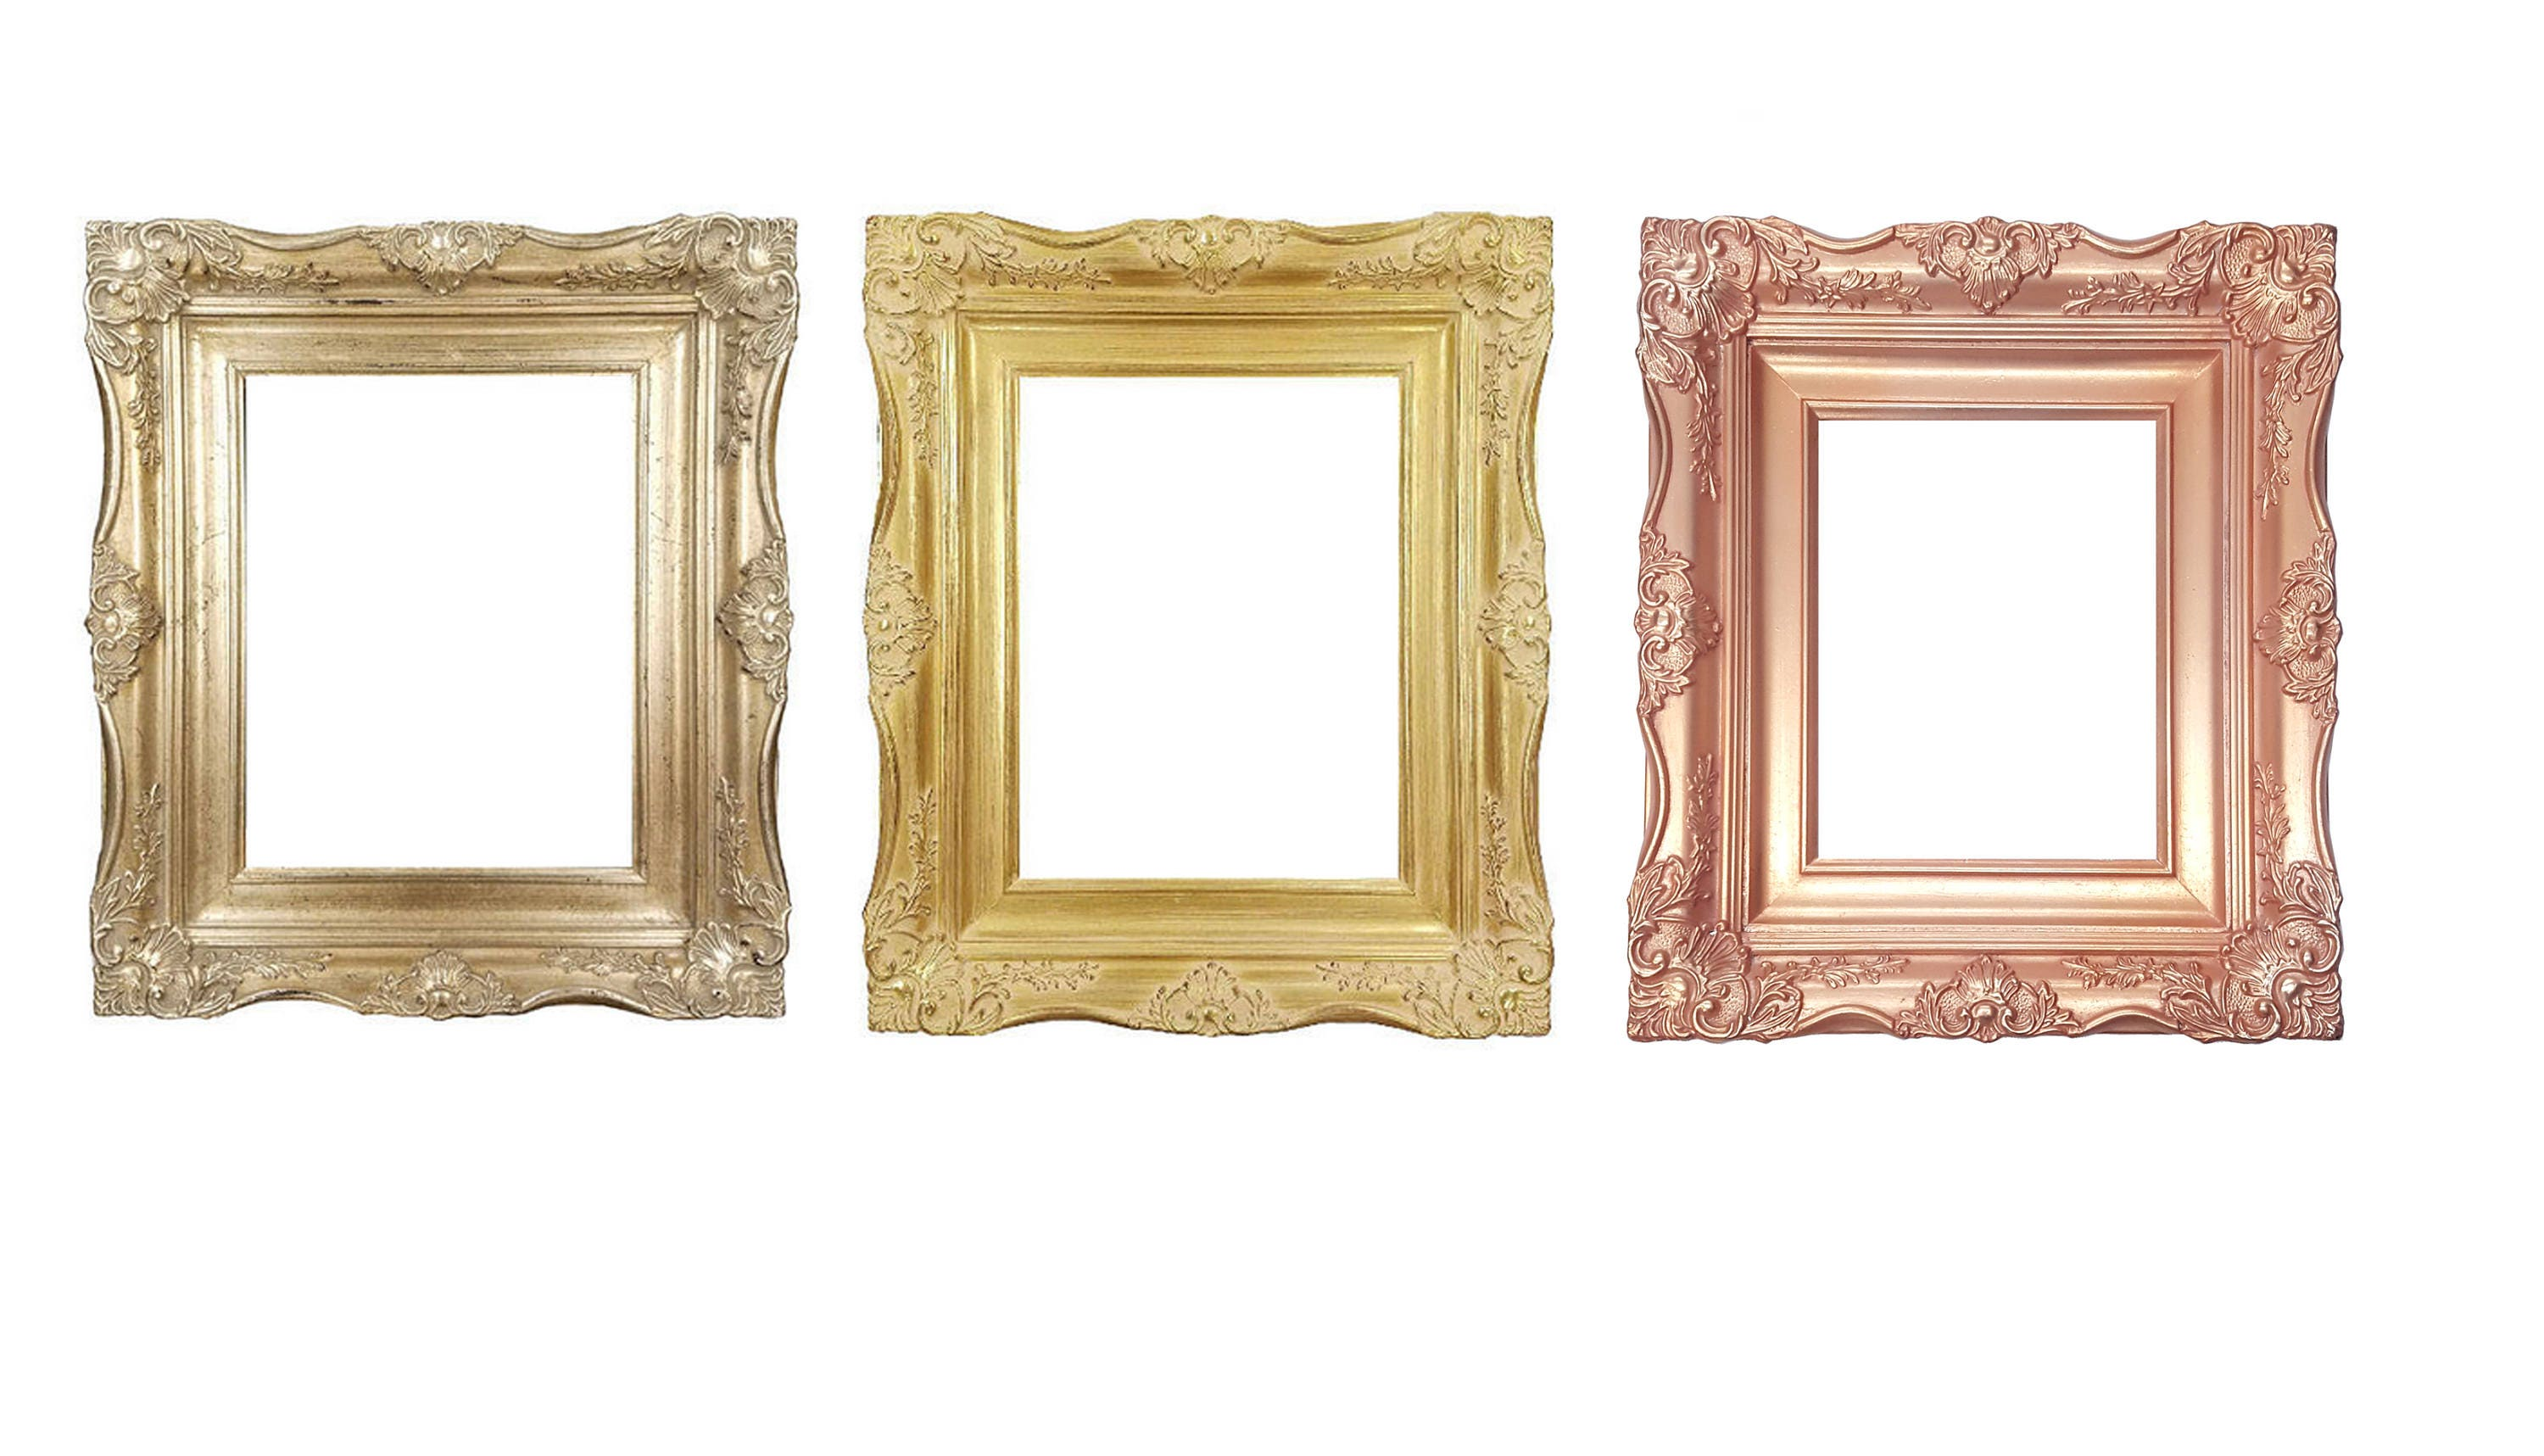 4 Quot Ornate Baroque French Gold Silver Or Rose Gold